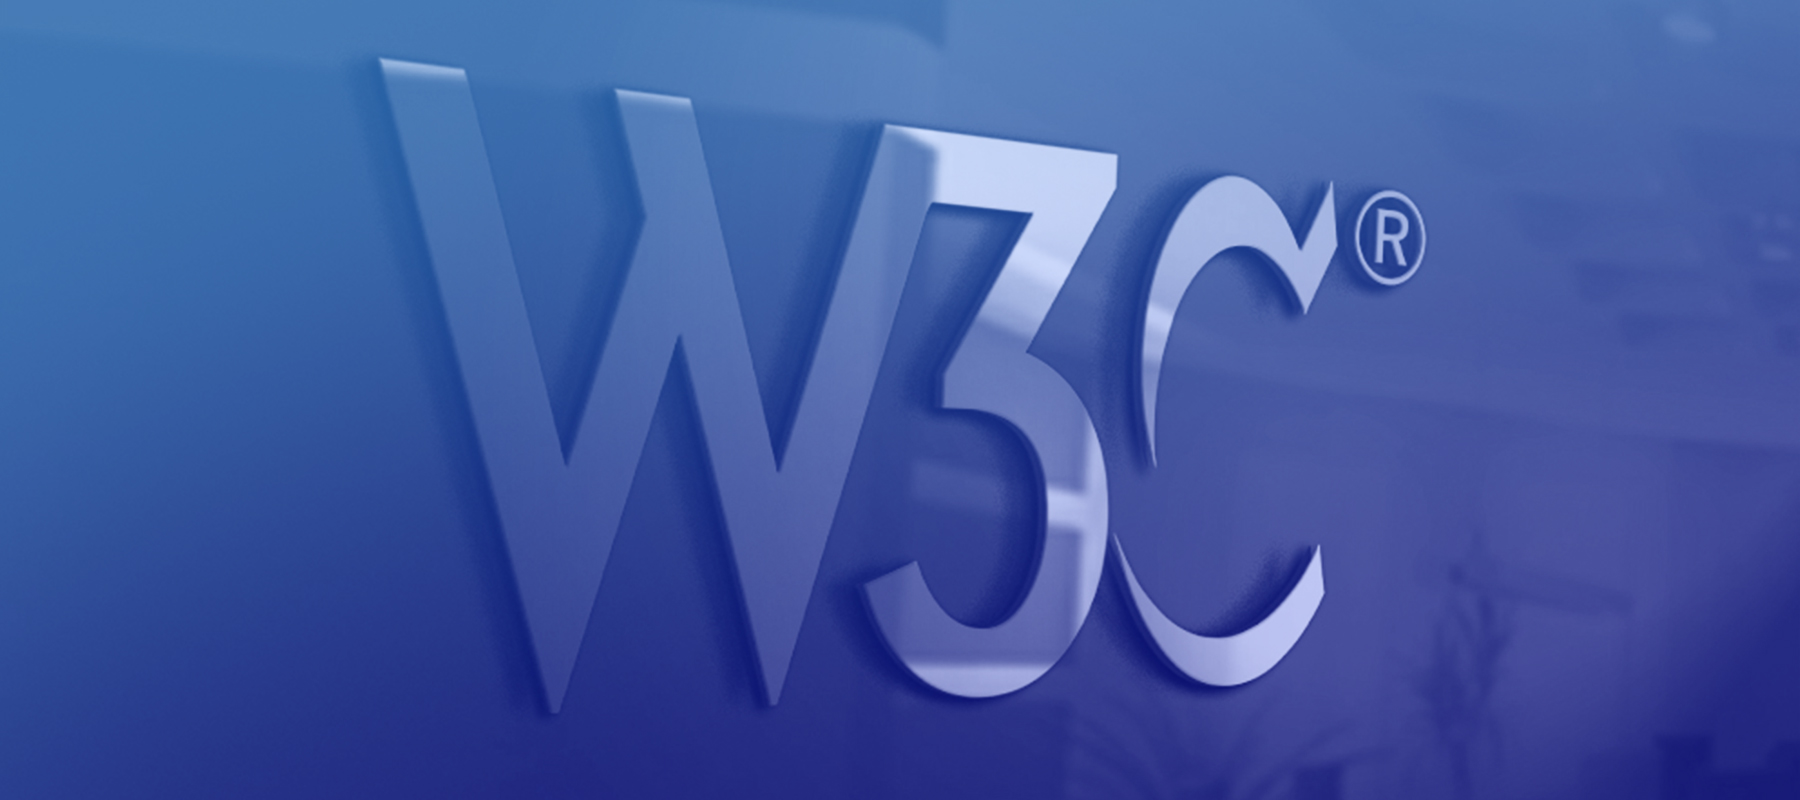 Introduction to WCAG